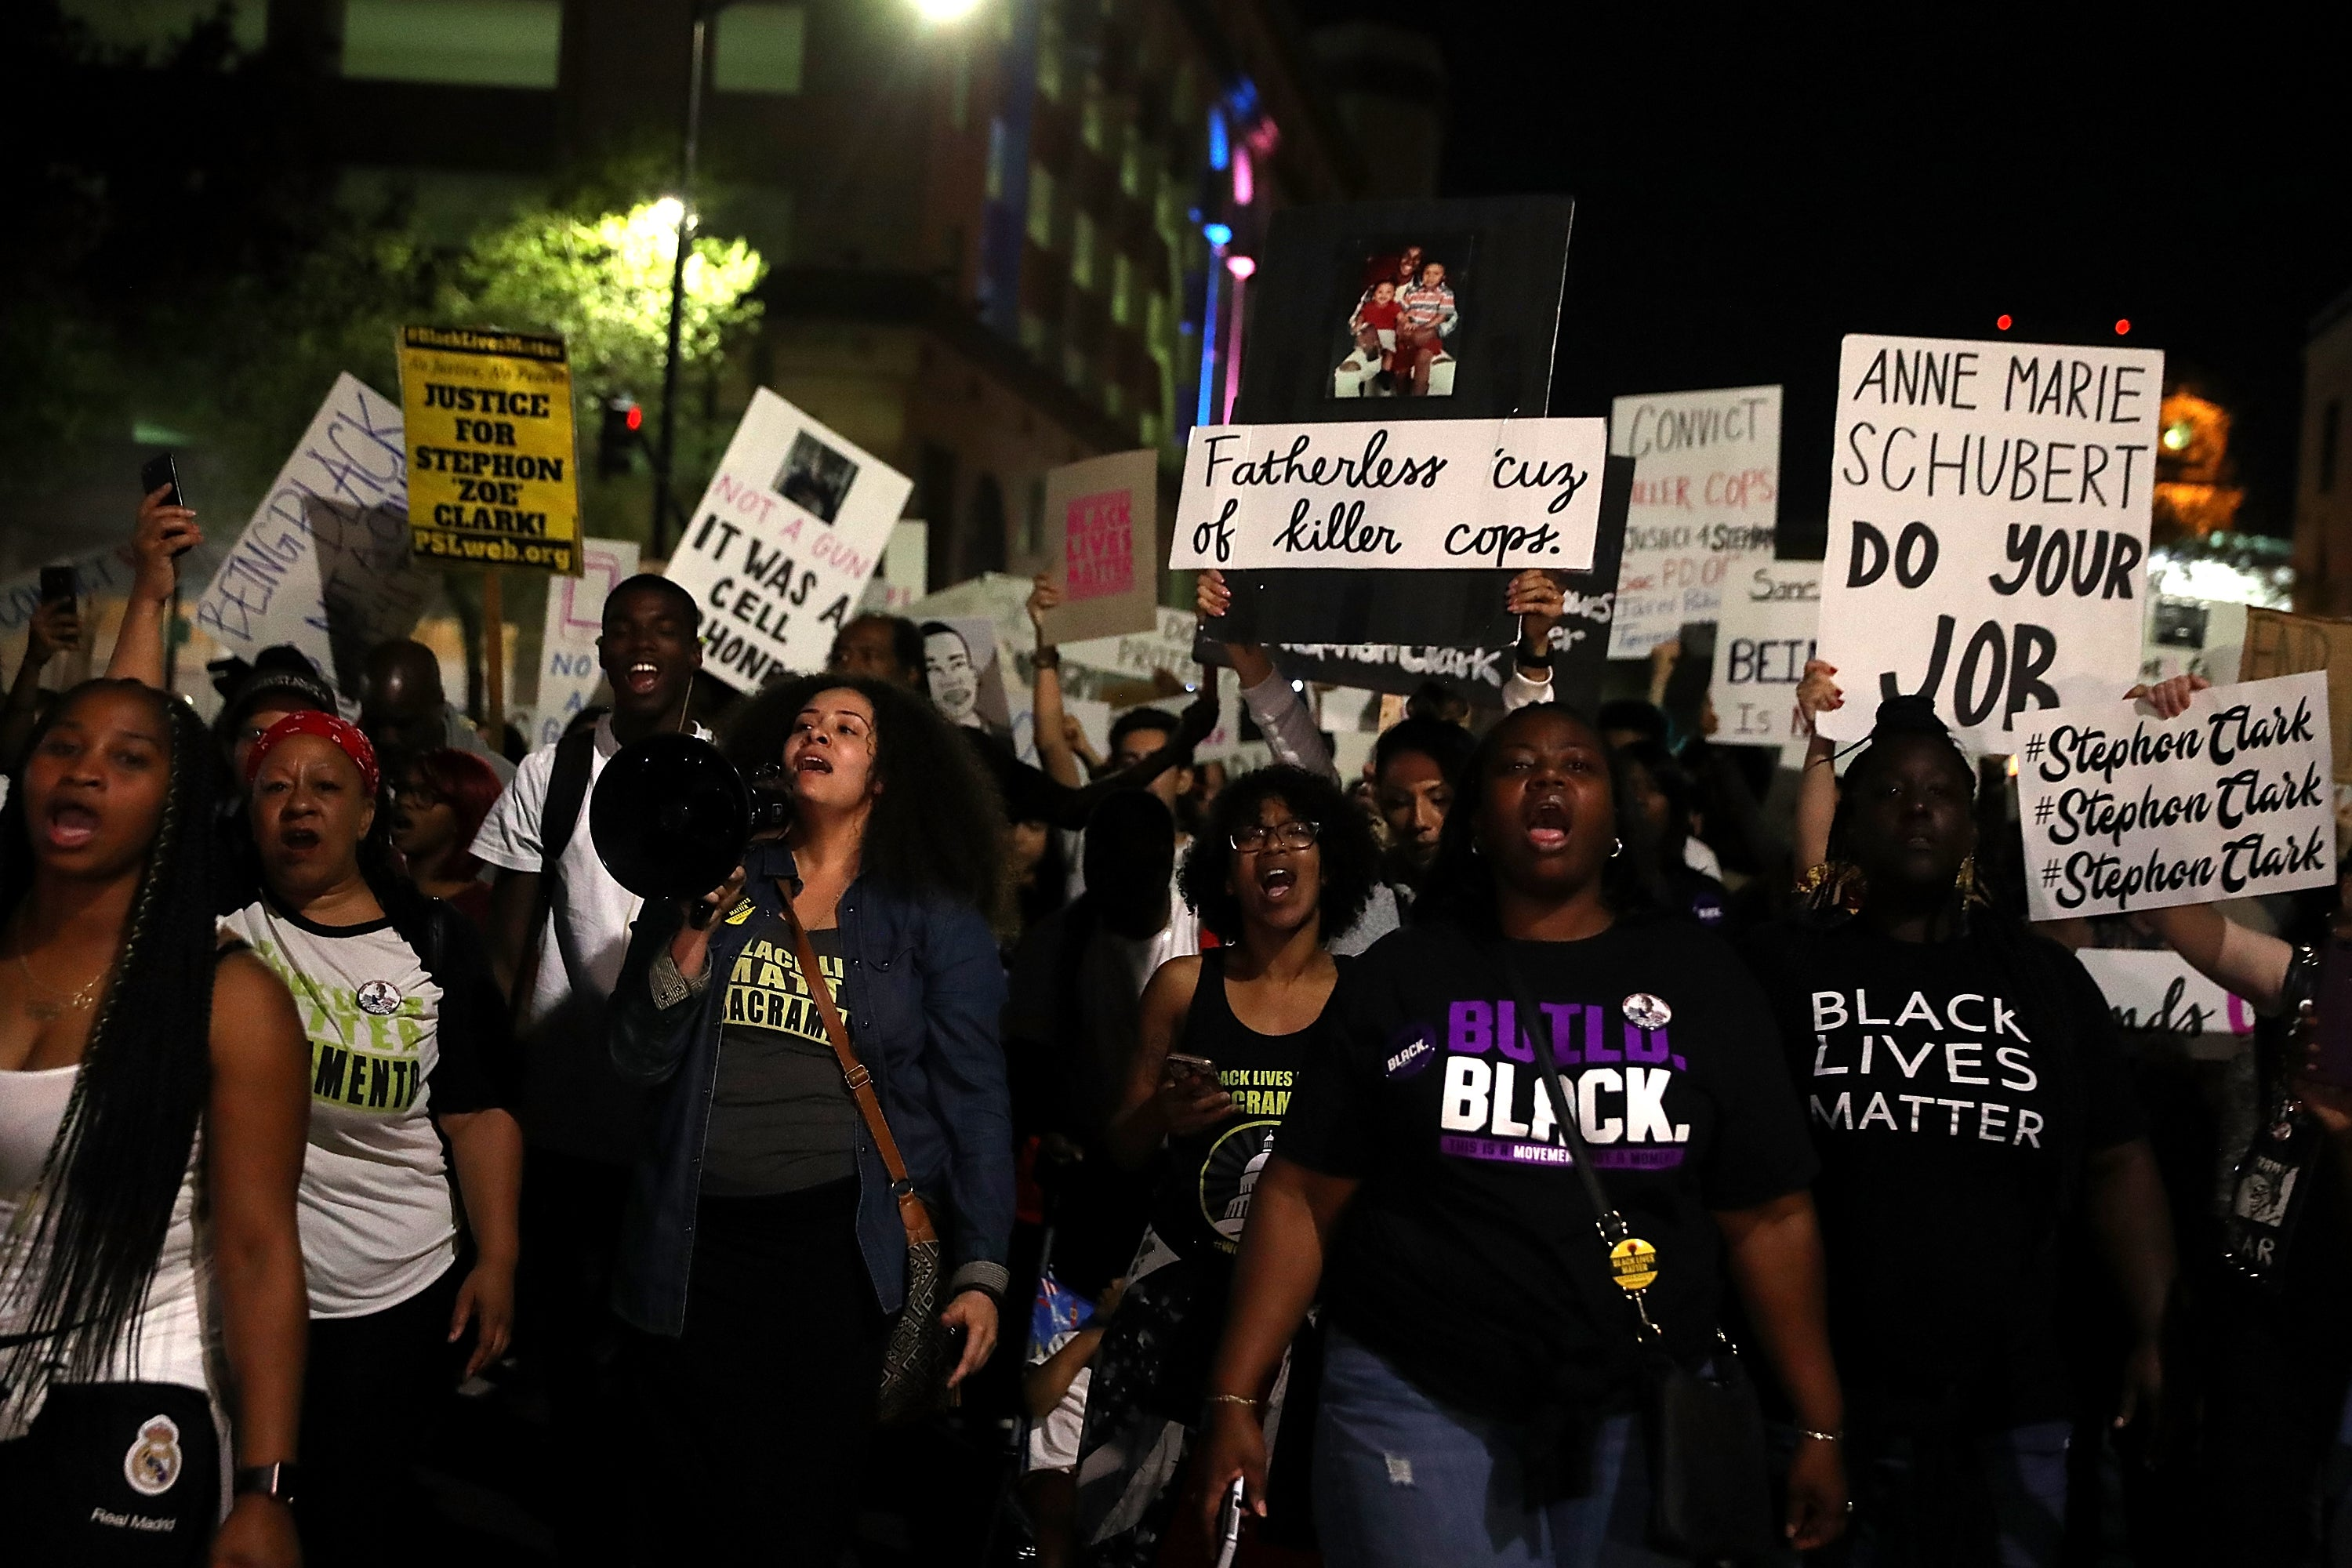 Community Leaders Gather In D.C. To Plot Way Forward For A Divided America